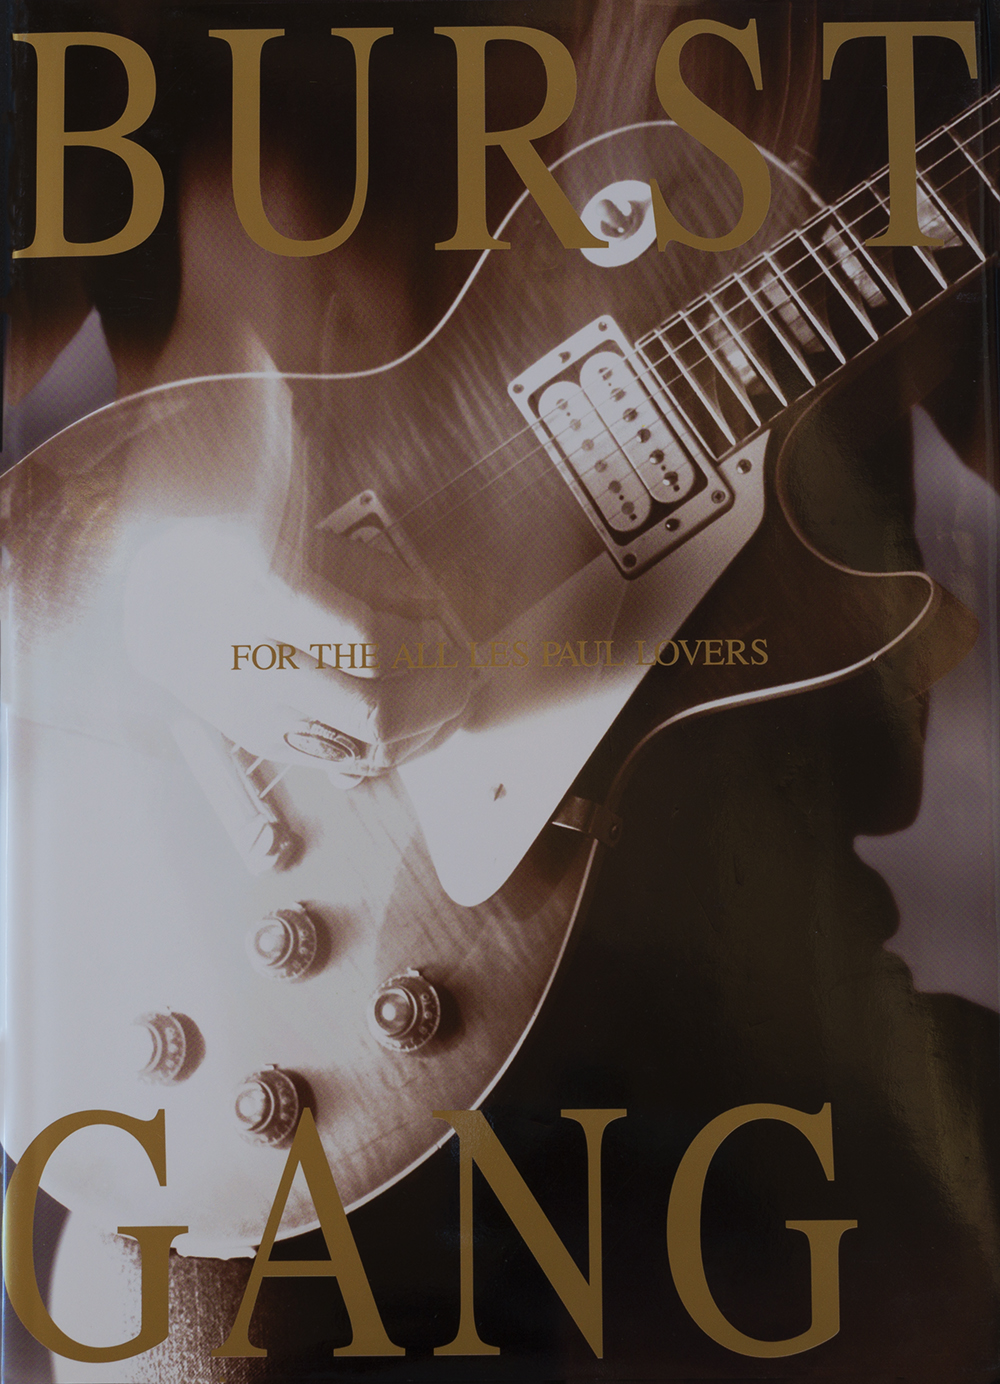 burst gang, for all the les paul lovers, by 1st guitar and morry takashima